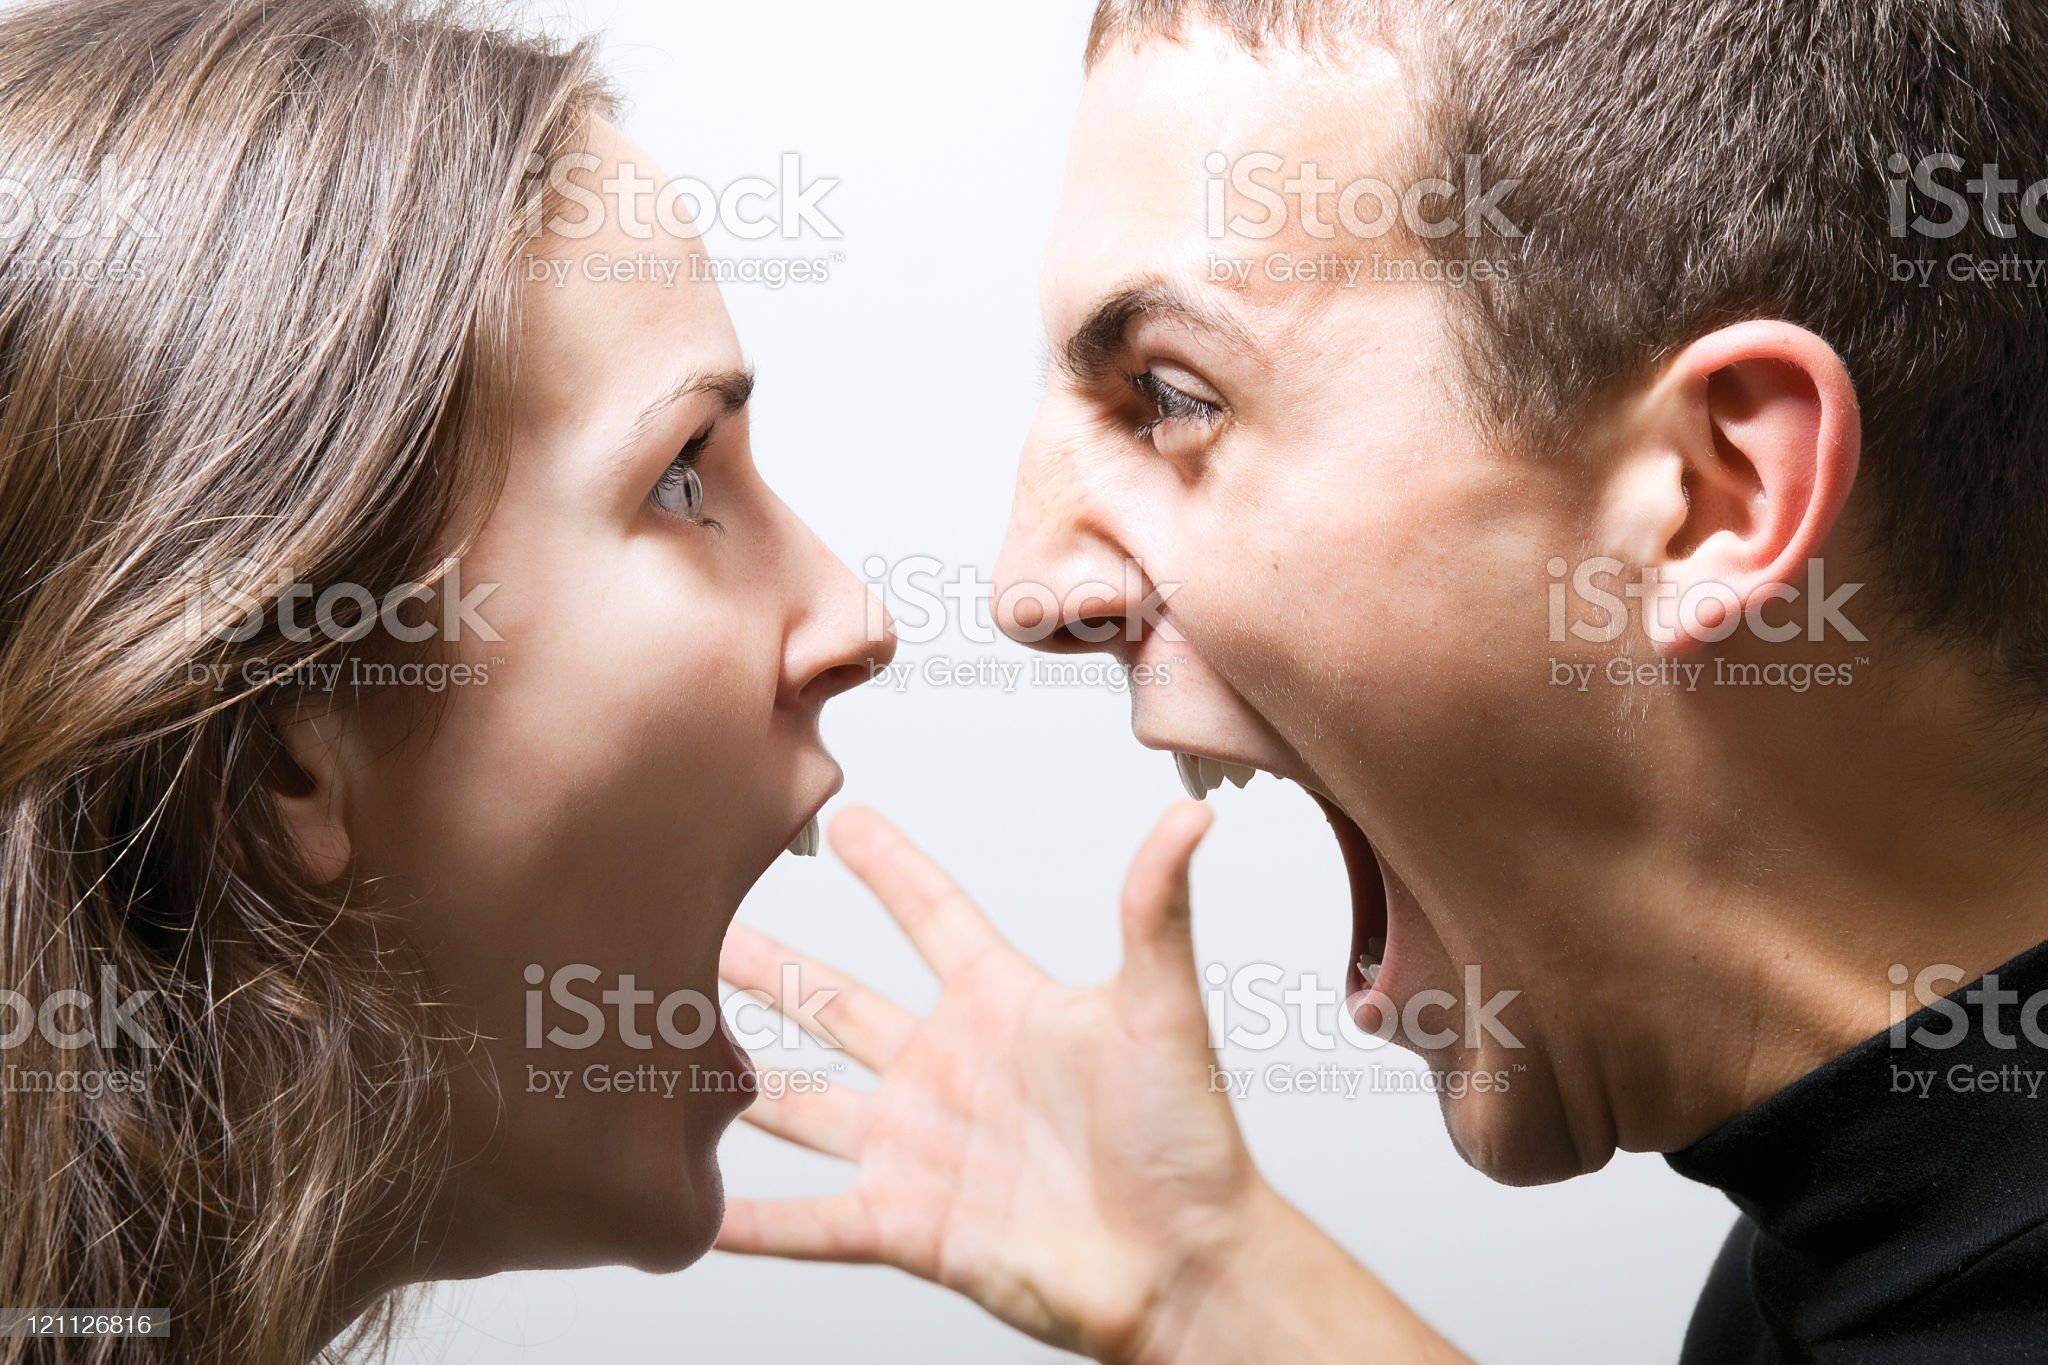 A man and a woman screaming at each other royalty-free stock photo